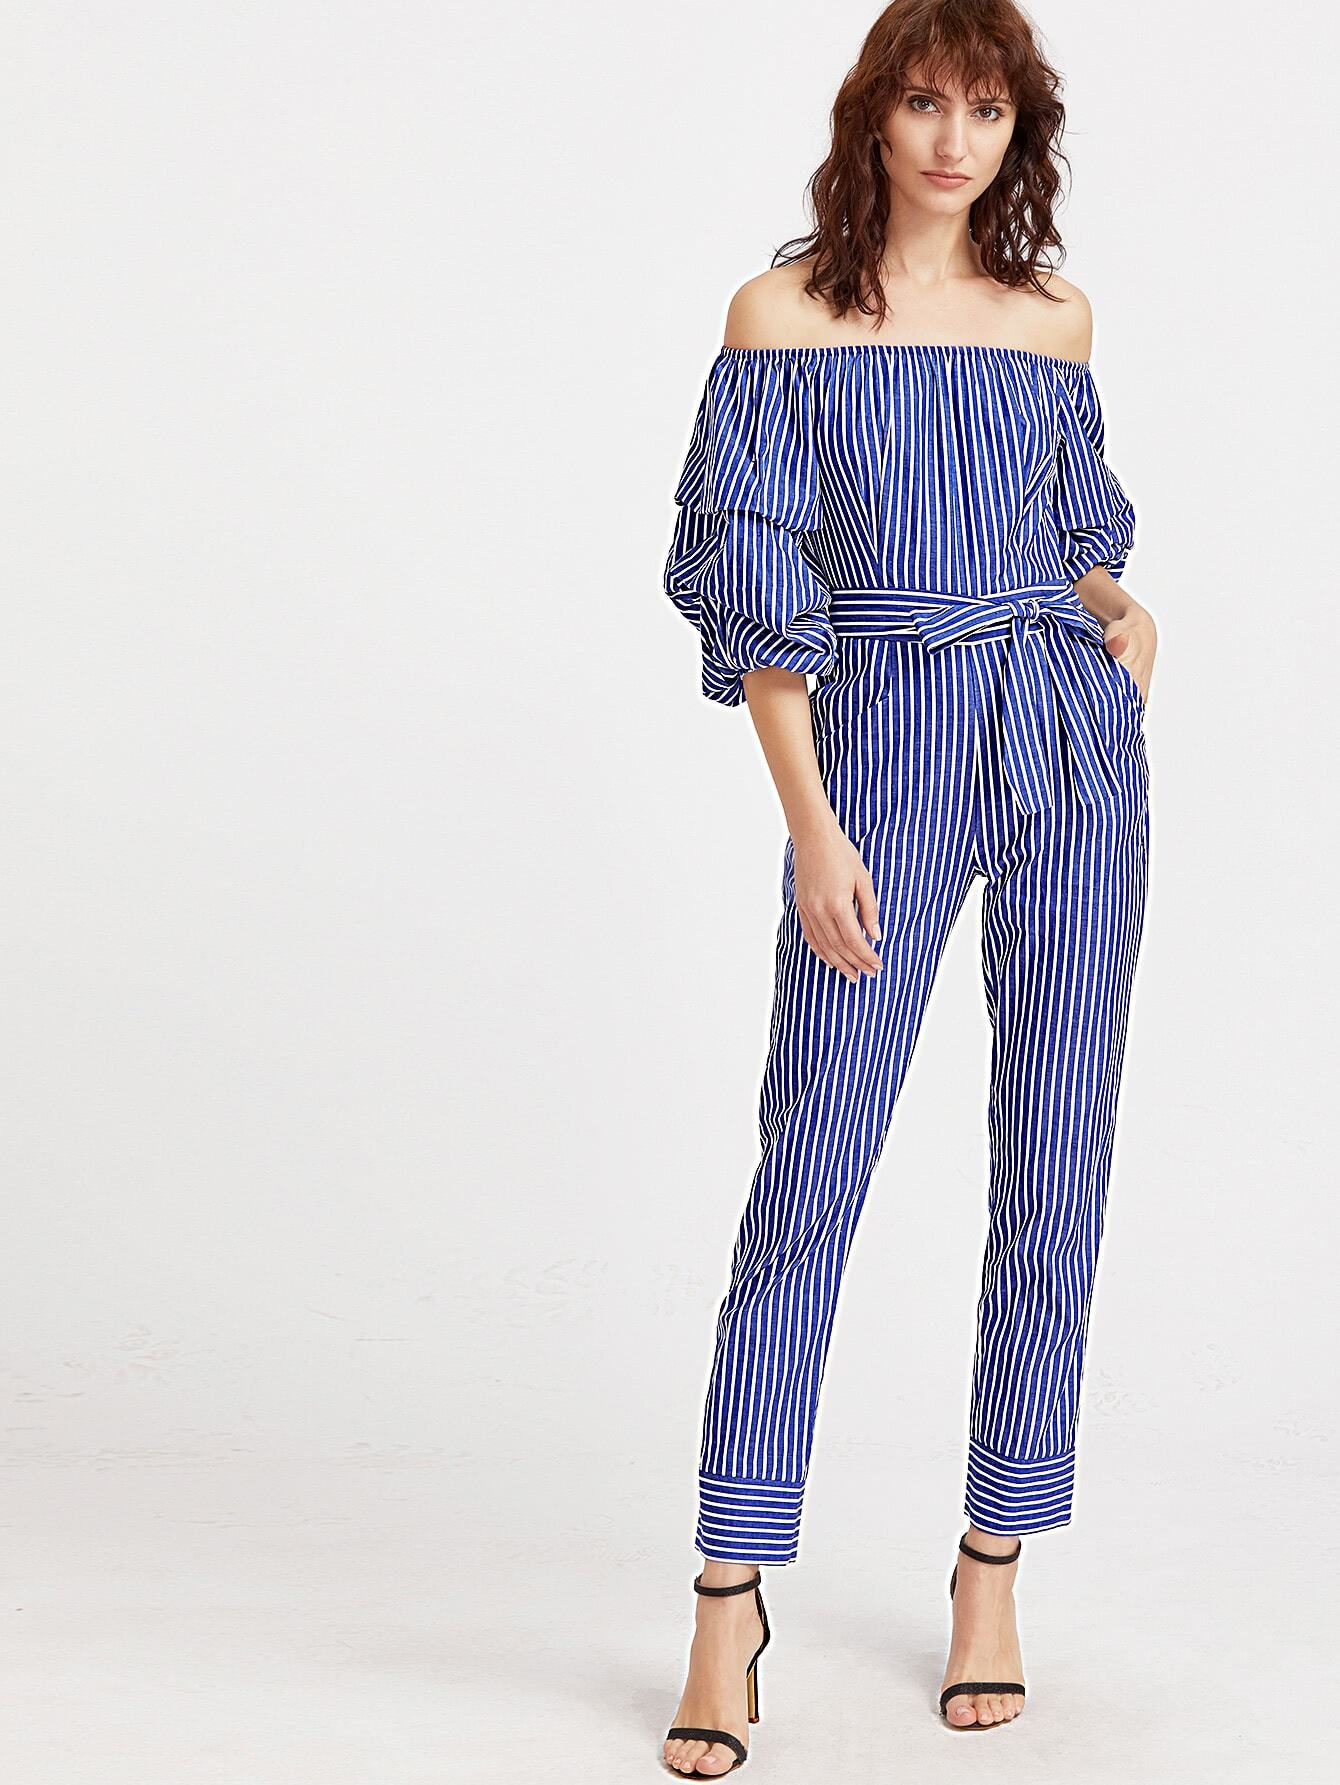 Jumpsuits-Rompers. Explore the variety of jumpsuits and rompers for juniors and discover the perfect outfit for fun in the sun. Looking for the ease of a pull-on outfit?